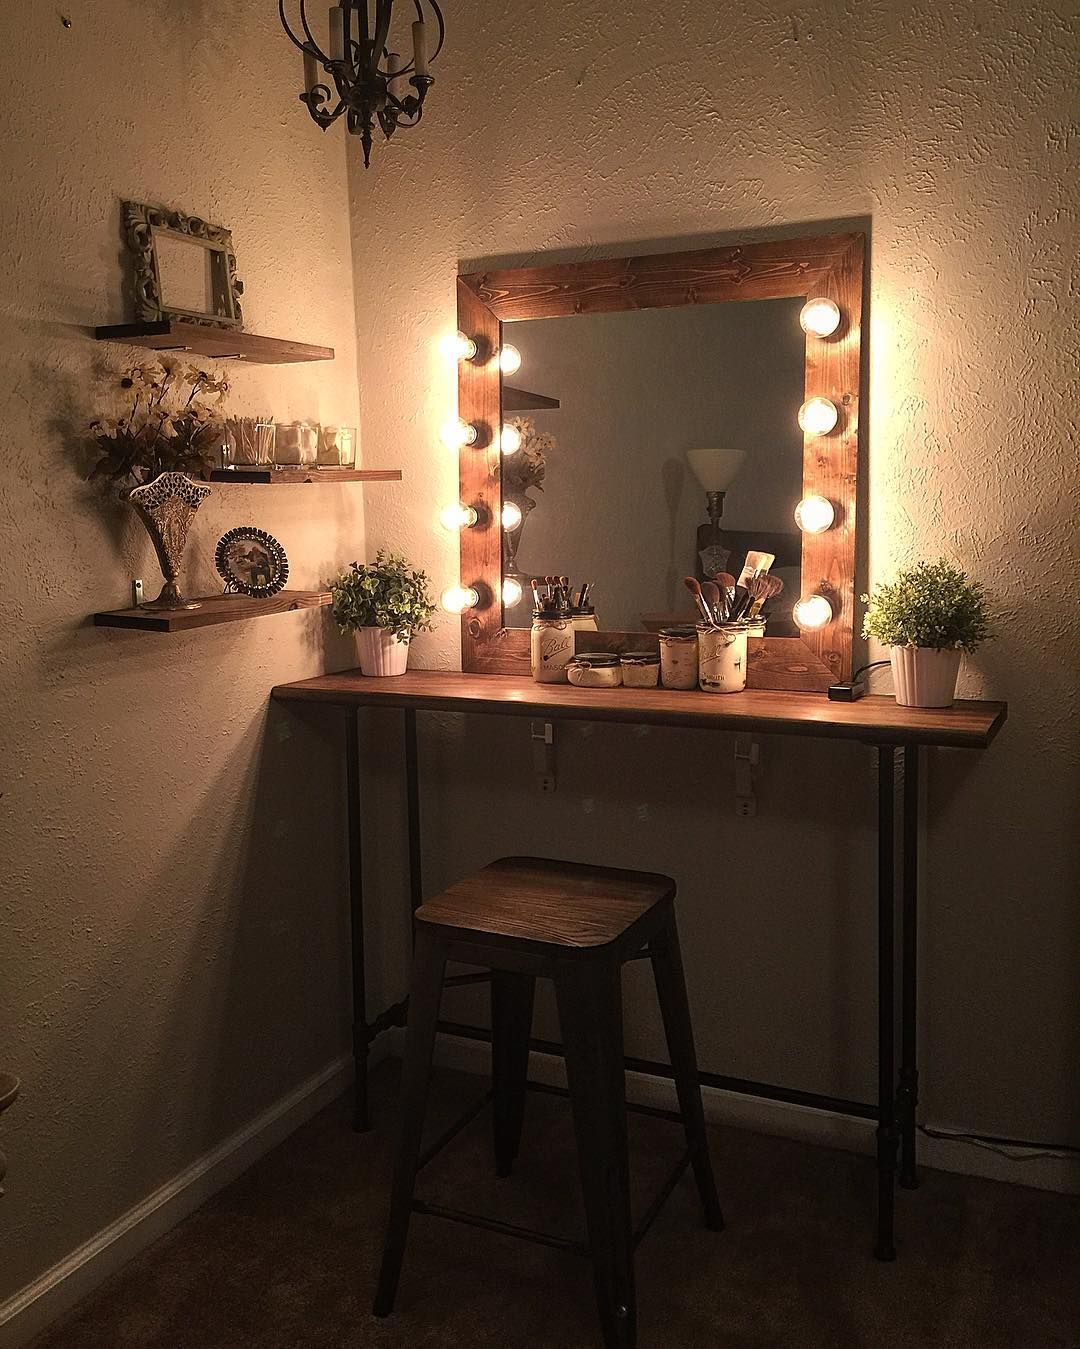 Vanity With Lights For Room : Cute easy simple DIY wood rustic vanity mirror with hollywood style lights 4 any makeup room ...